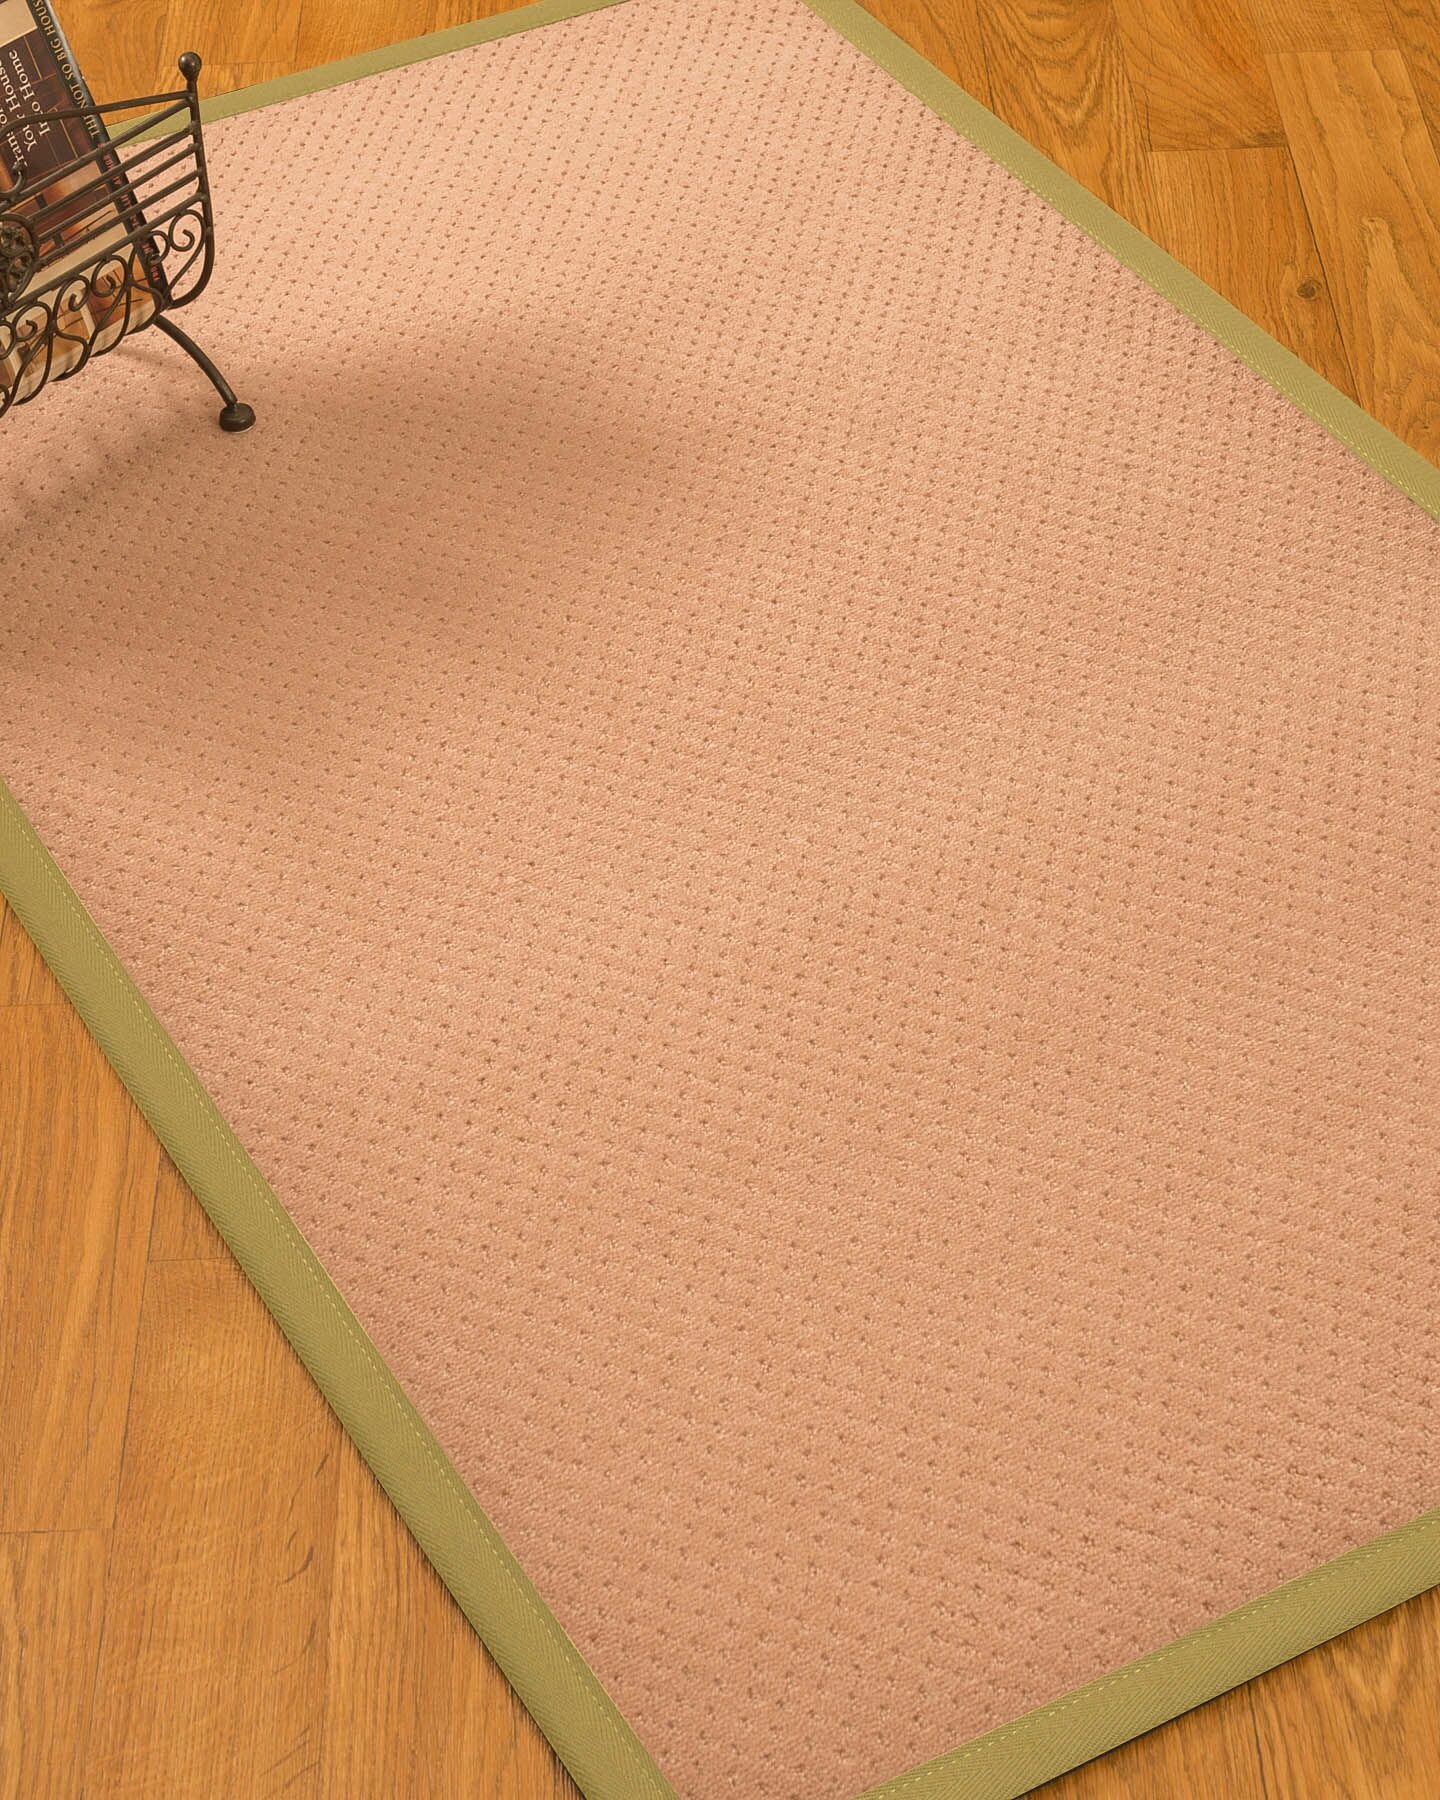 Farnham Border Hand-Woven Wool Pink/Sand Area Rug Rug Size: Rectangle 12' x 15', Rug Pad Included: Yes